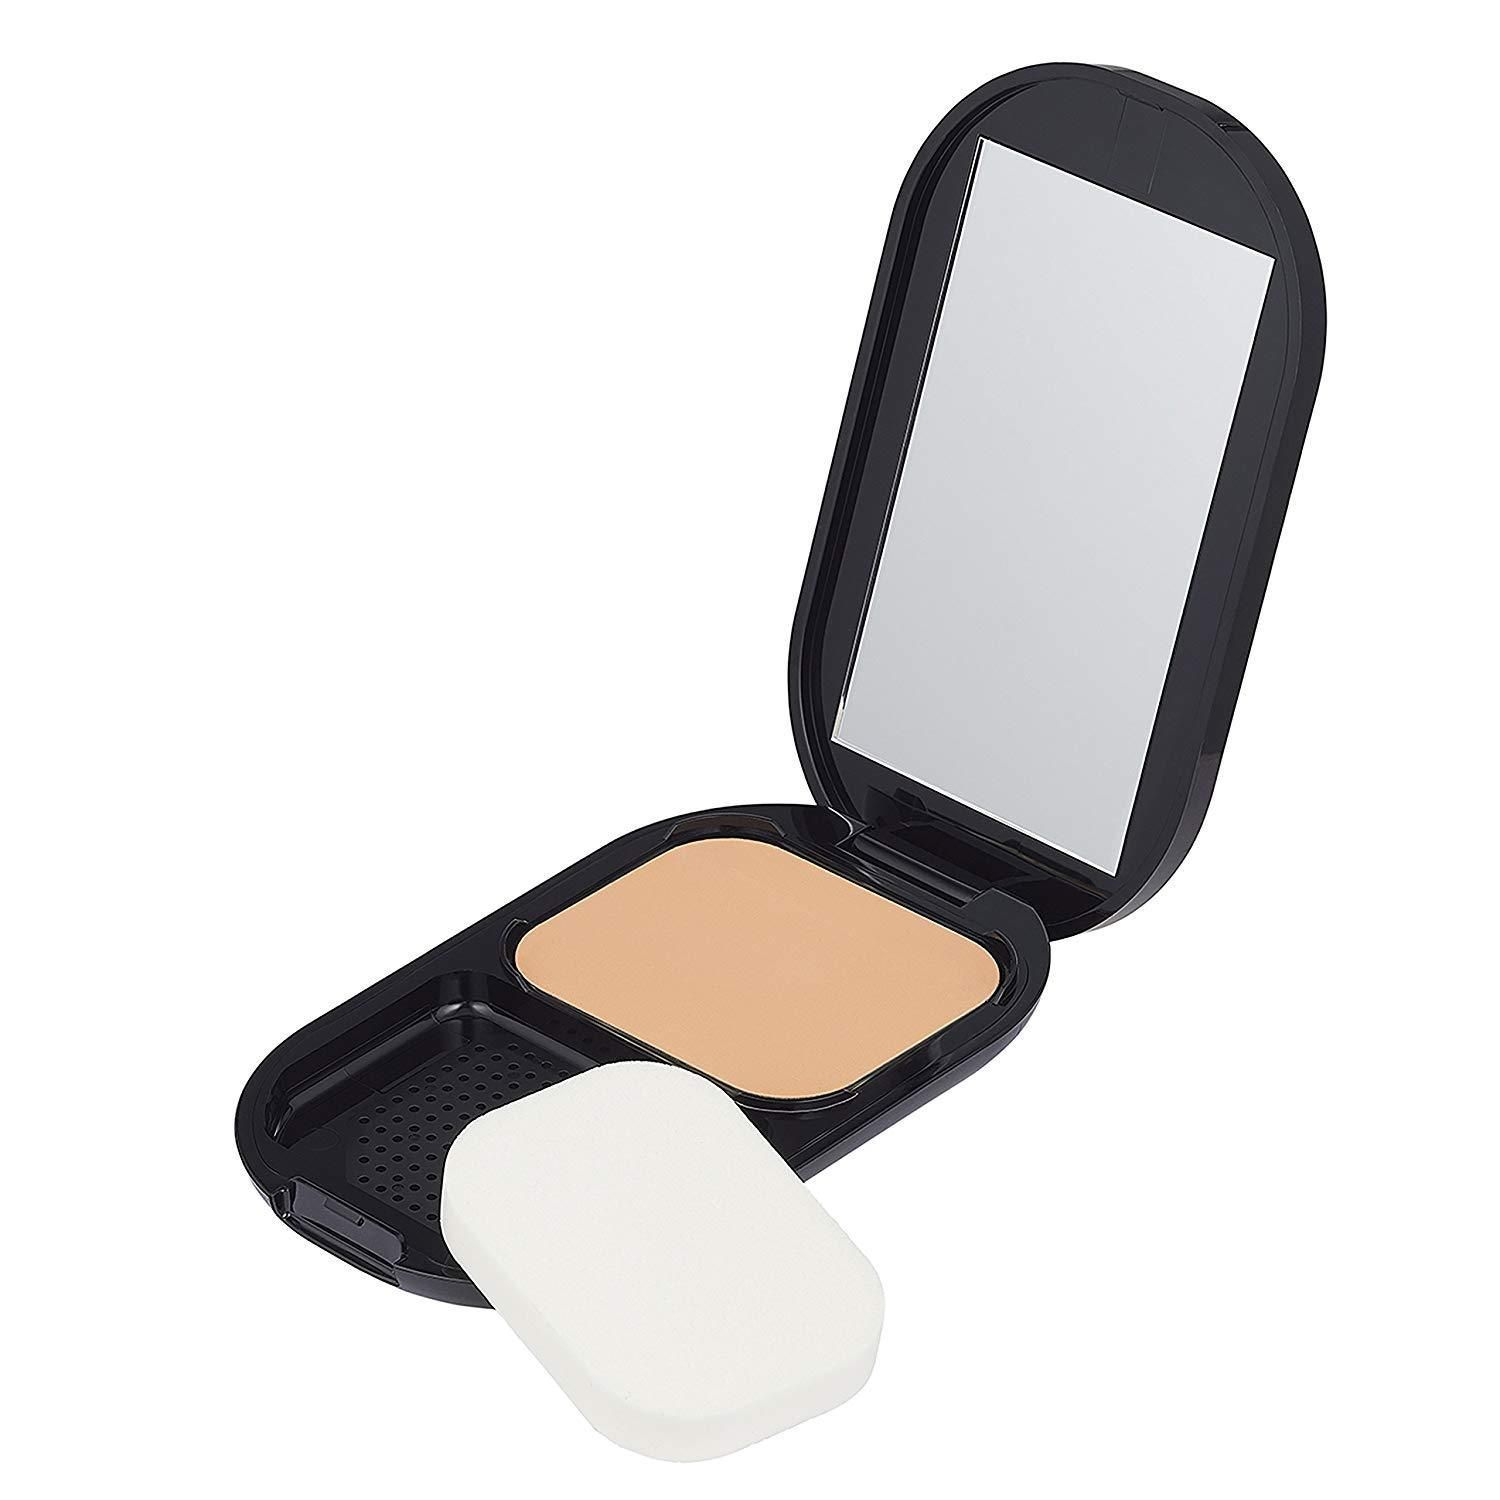 New Max Factor Facefinity Compact Foundation SPF20 - 01 Porcelain